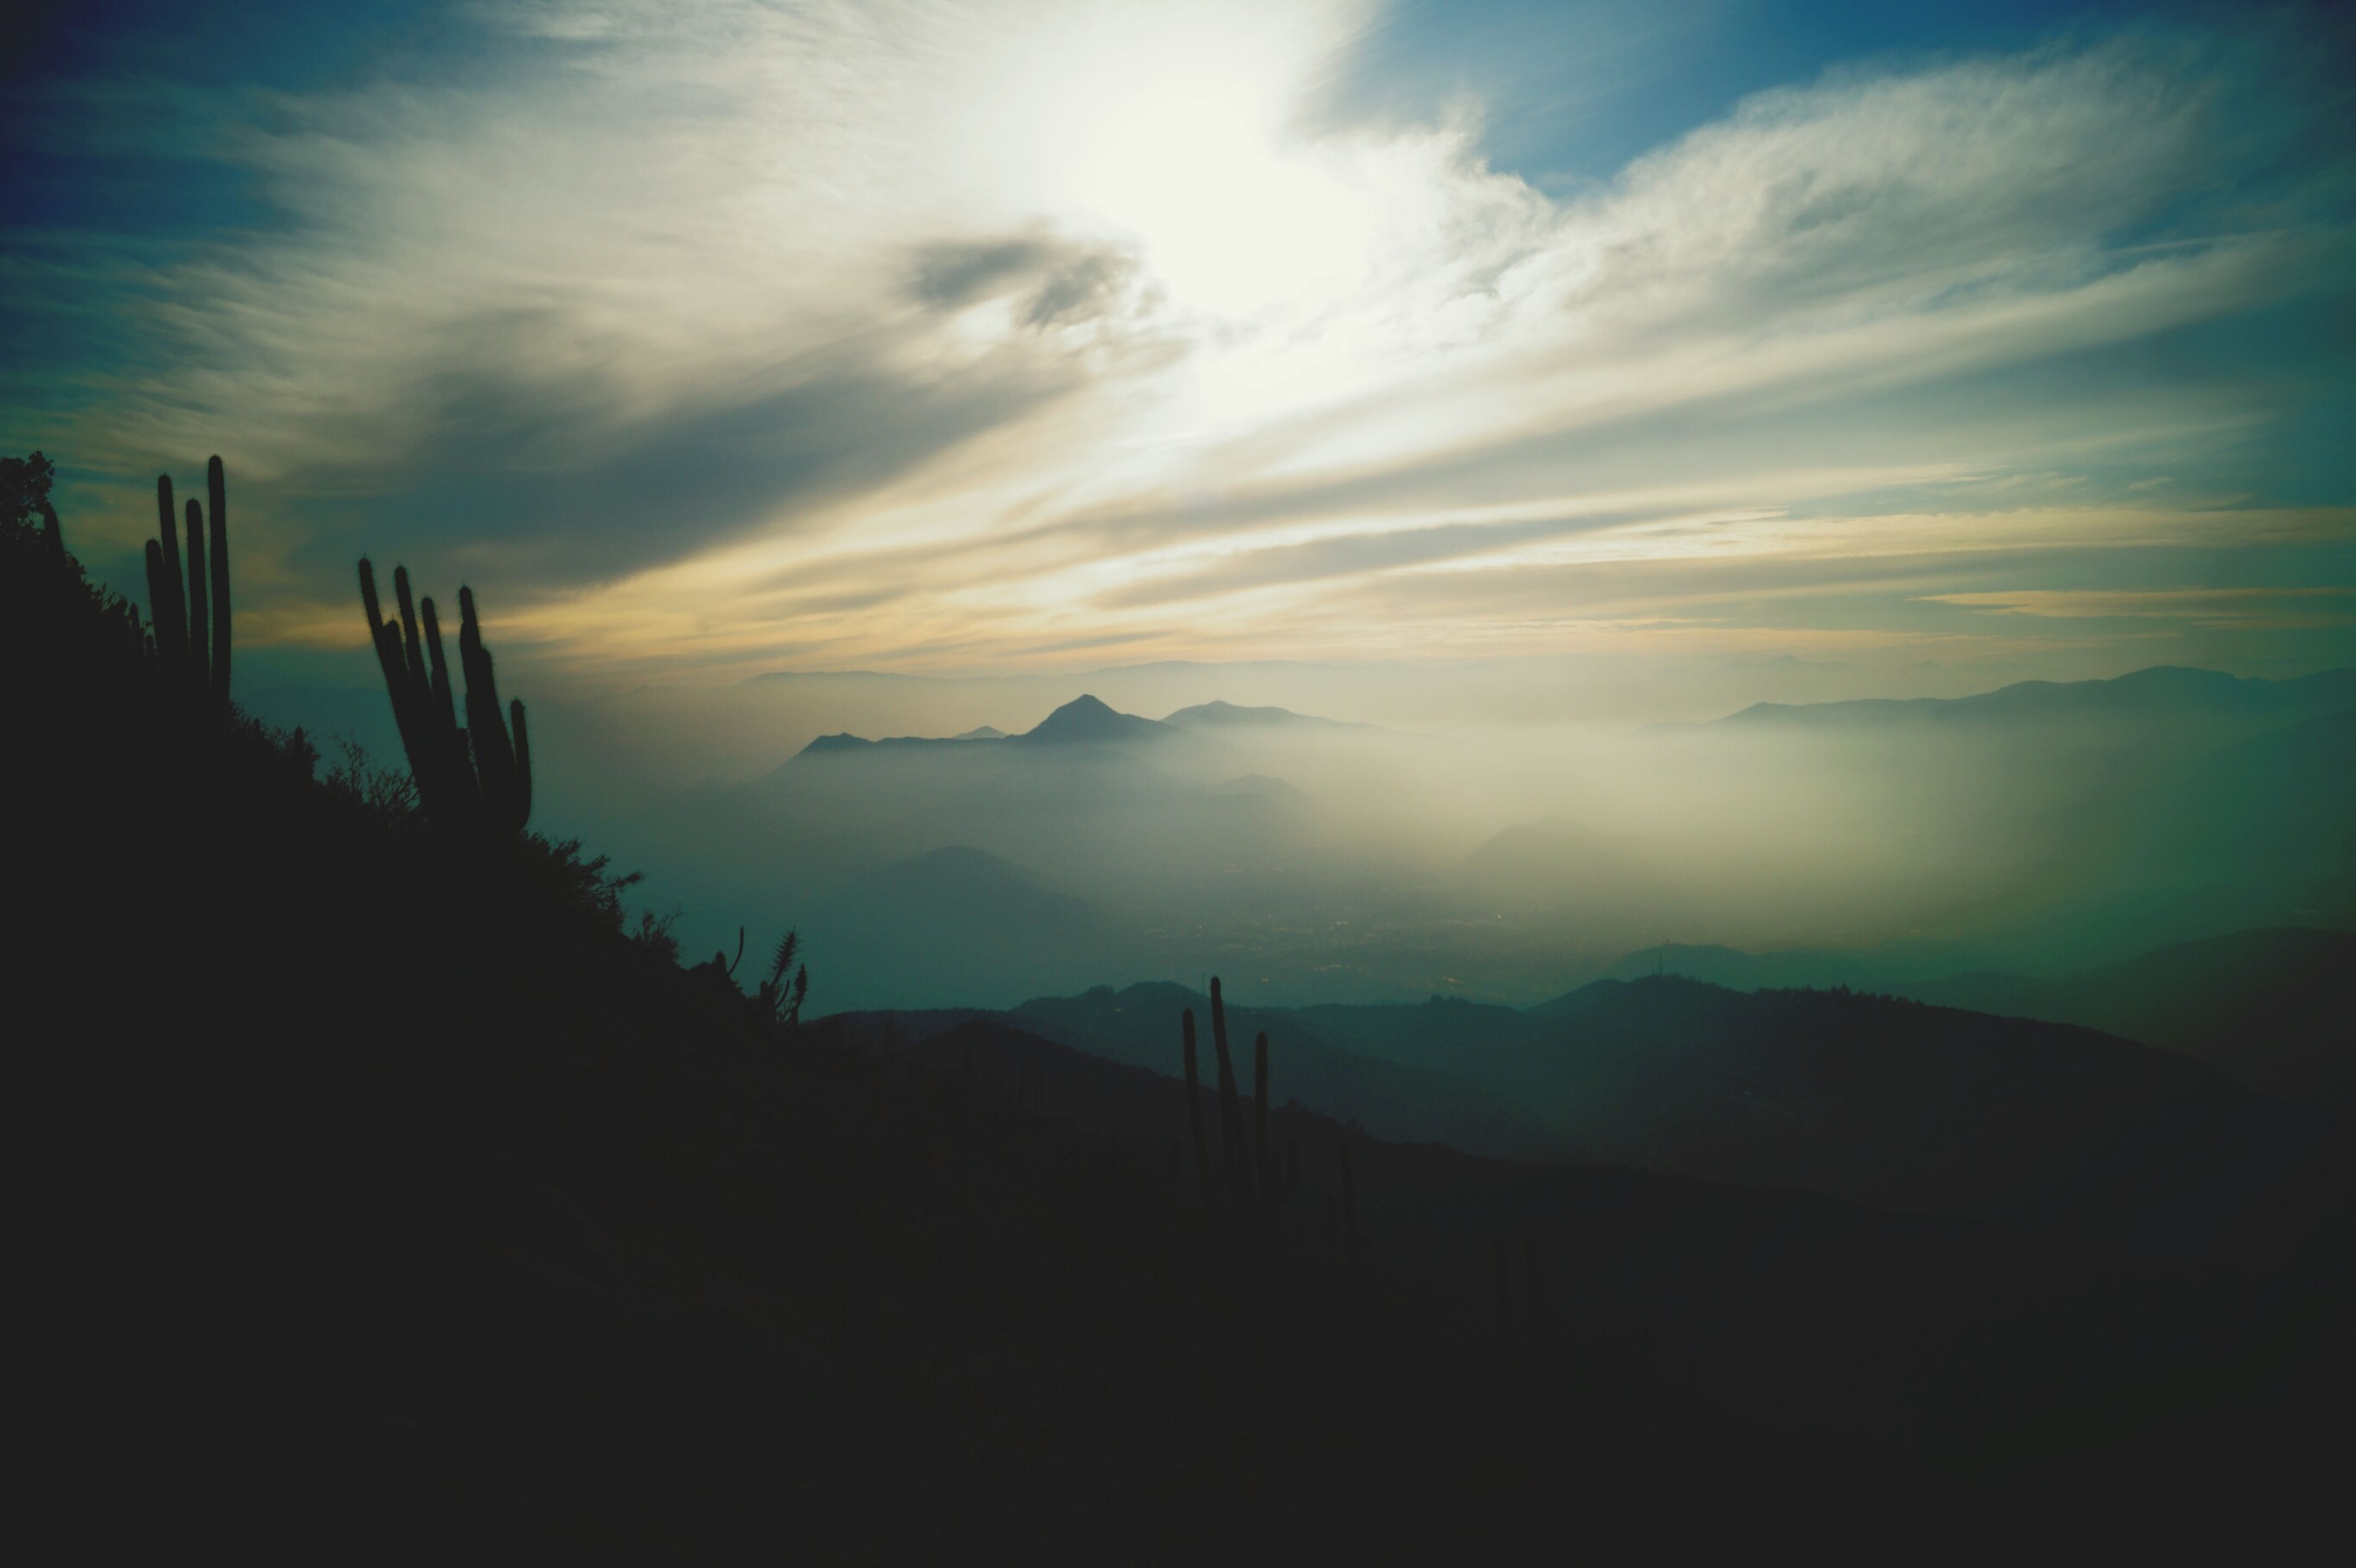 sky, silhouette, tranquil scene, scenics, tranquility, beauty in nature, cloud - sky, mountain, sunset, nature, cloudy, landscape, cloud, idyllic, mountain range, dusk, weather, outdoors, non-urban scene, no people